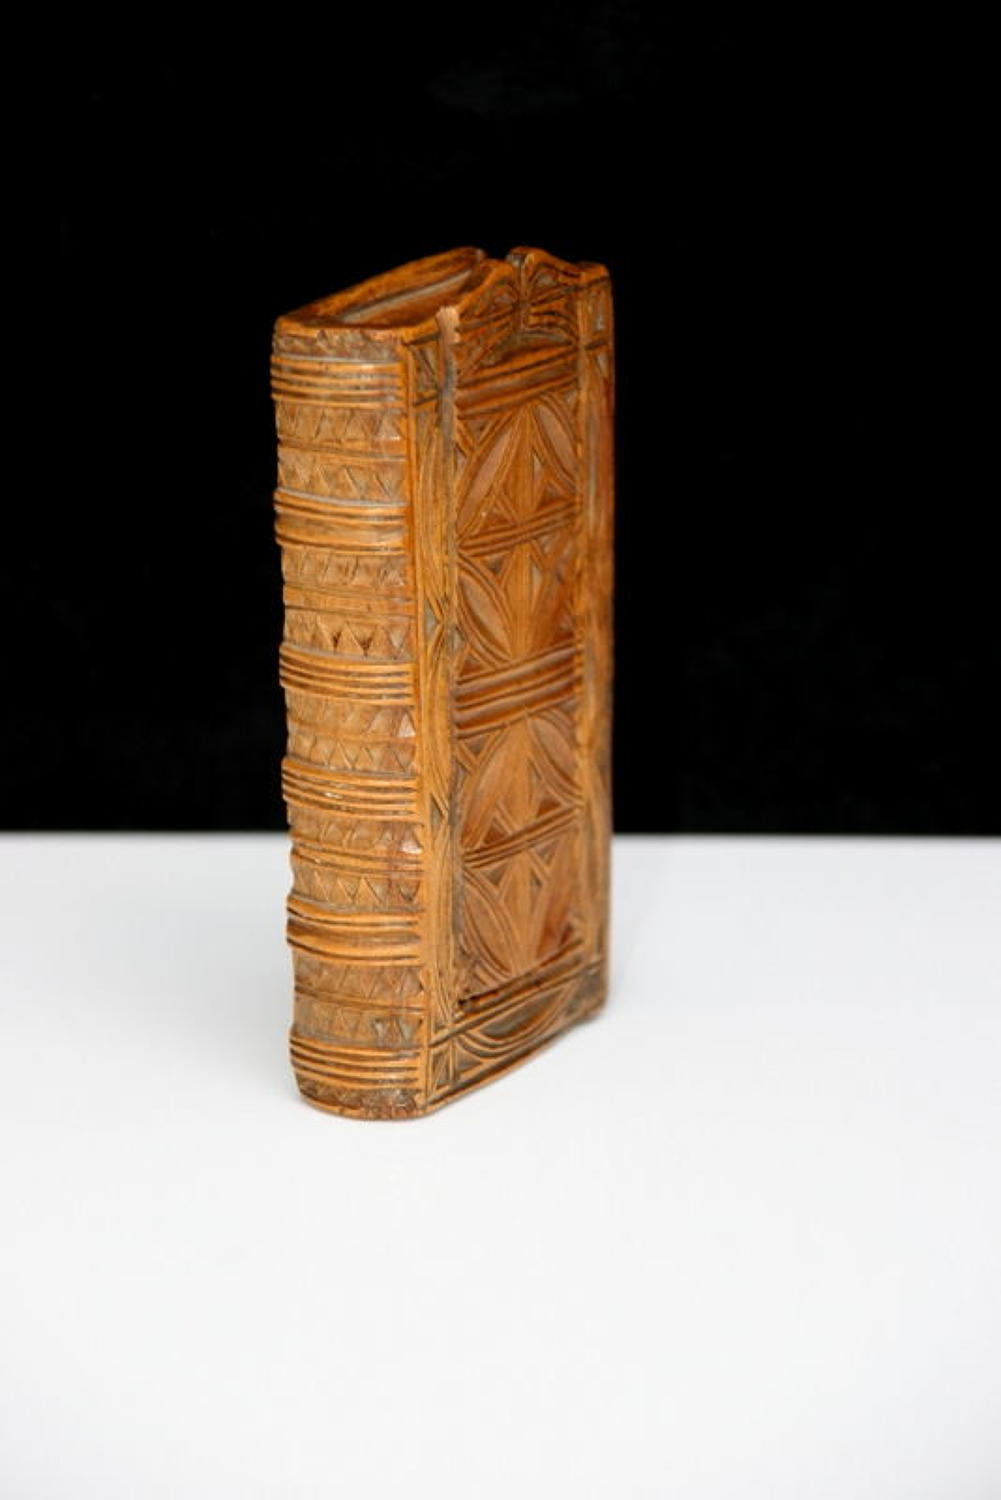 18th century book box form snuff box